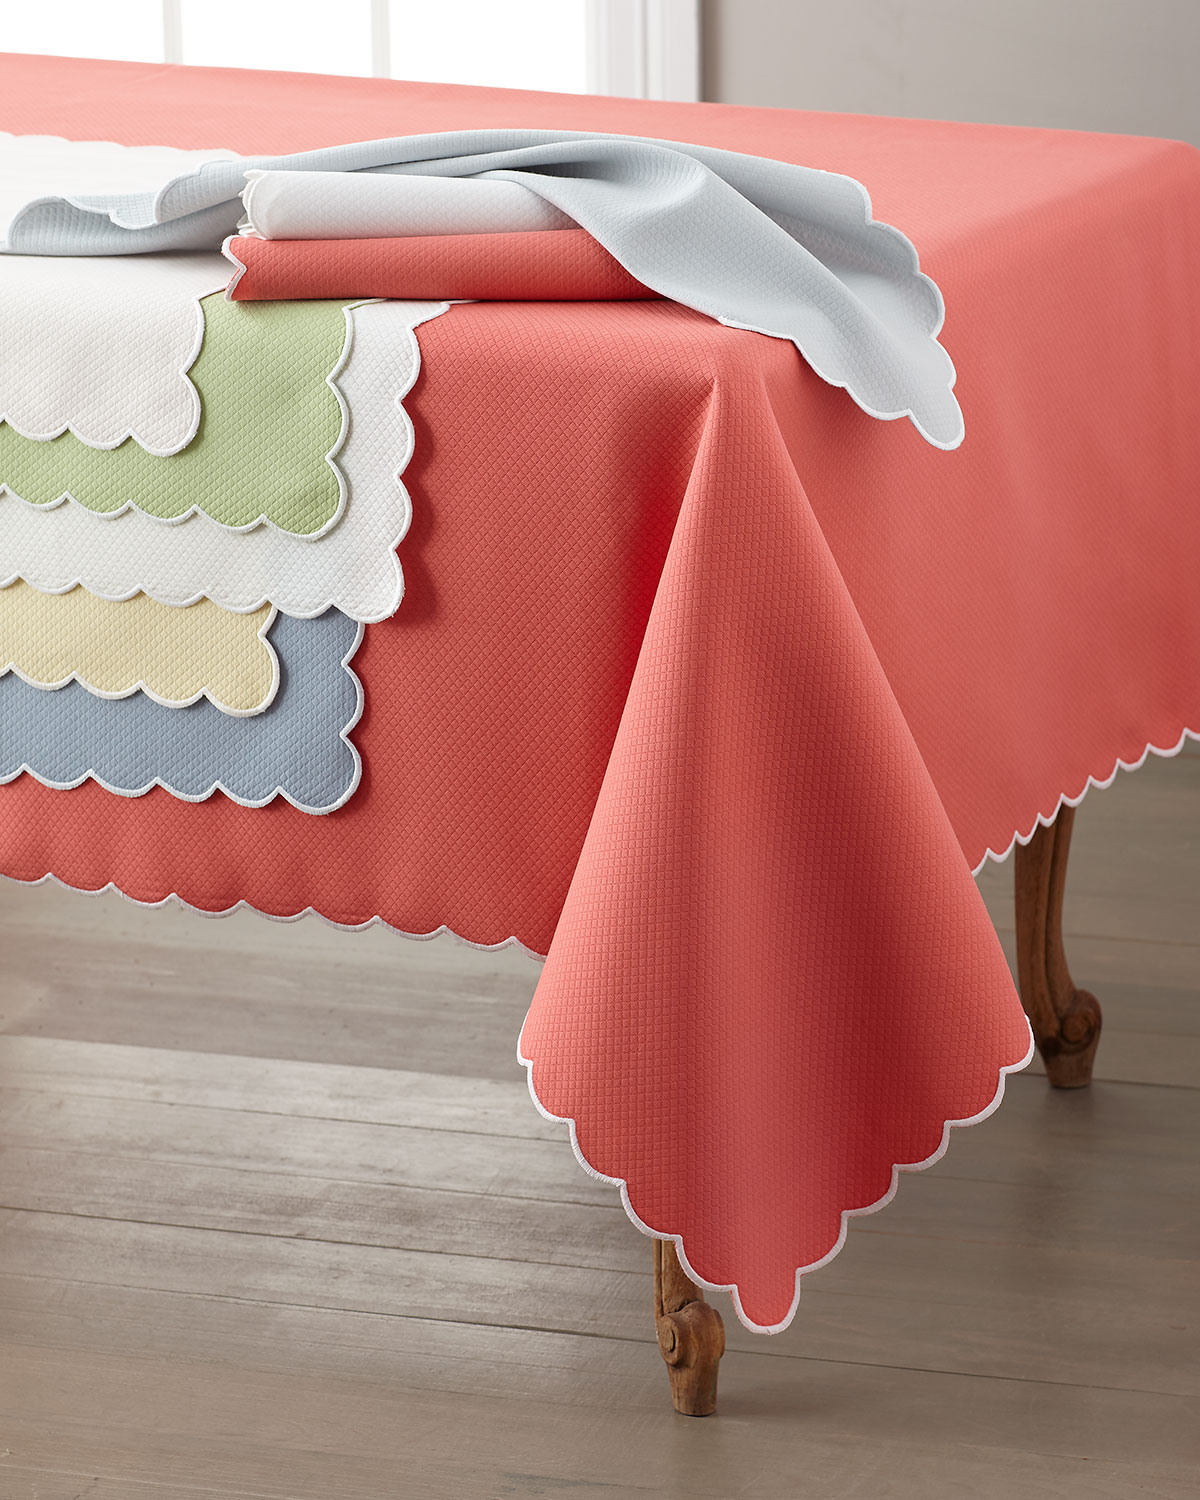 "Savannah Gardens Tablecloth, 68"" x 126"""